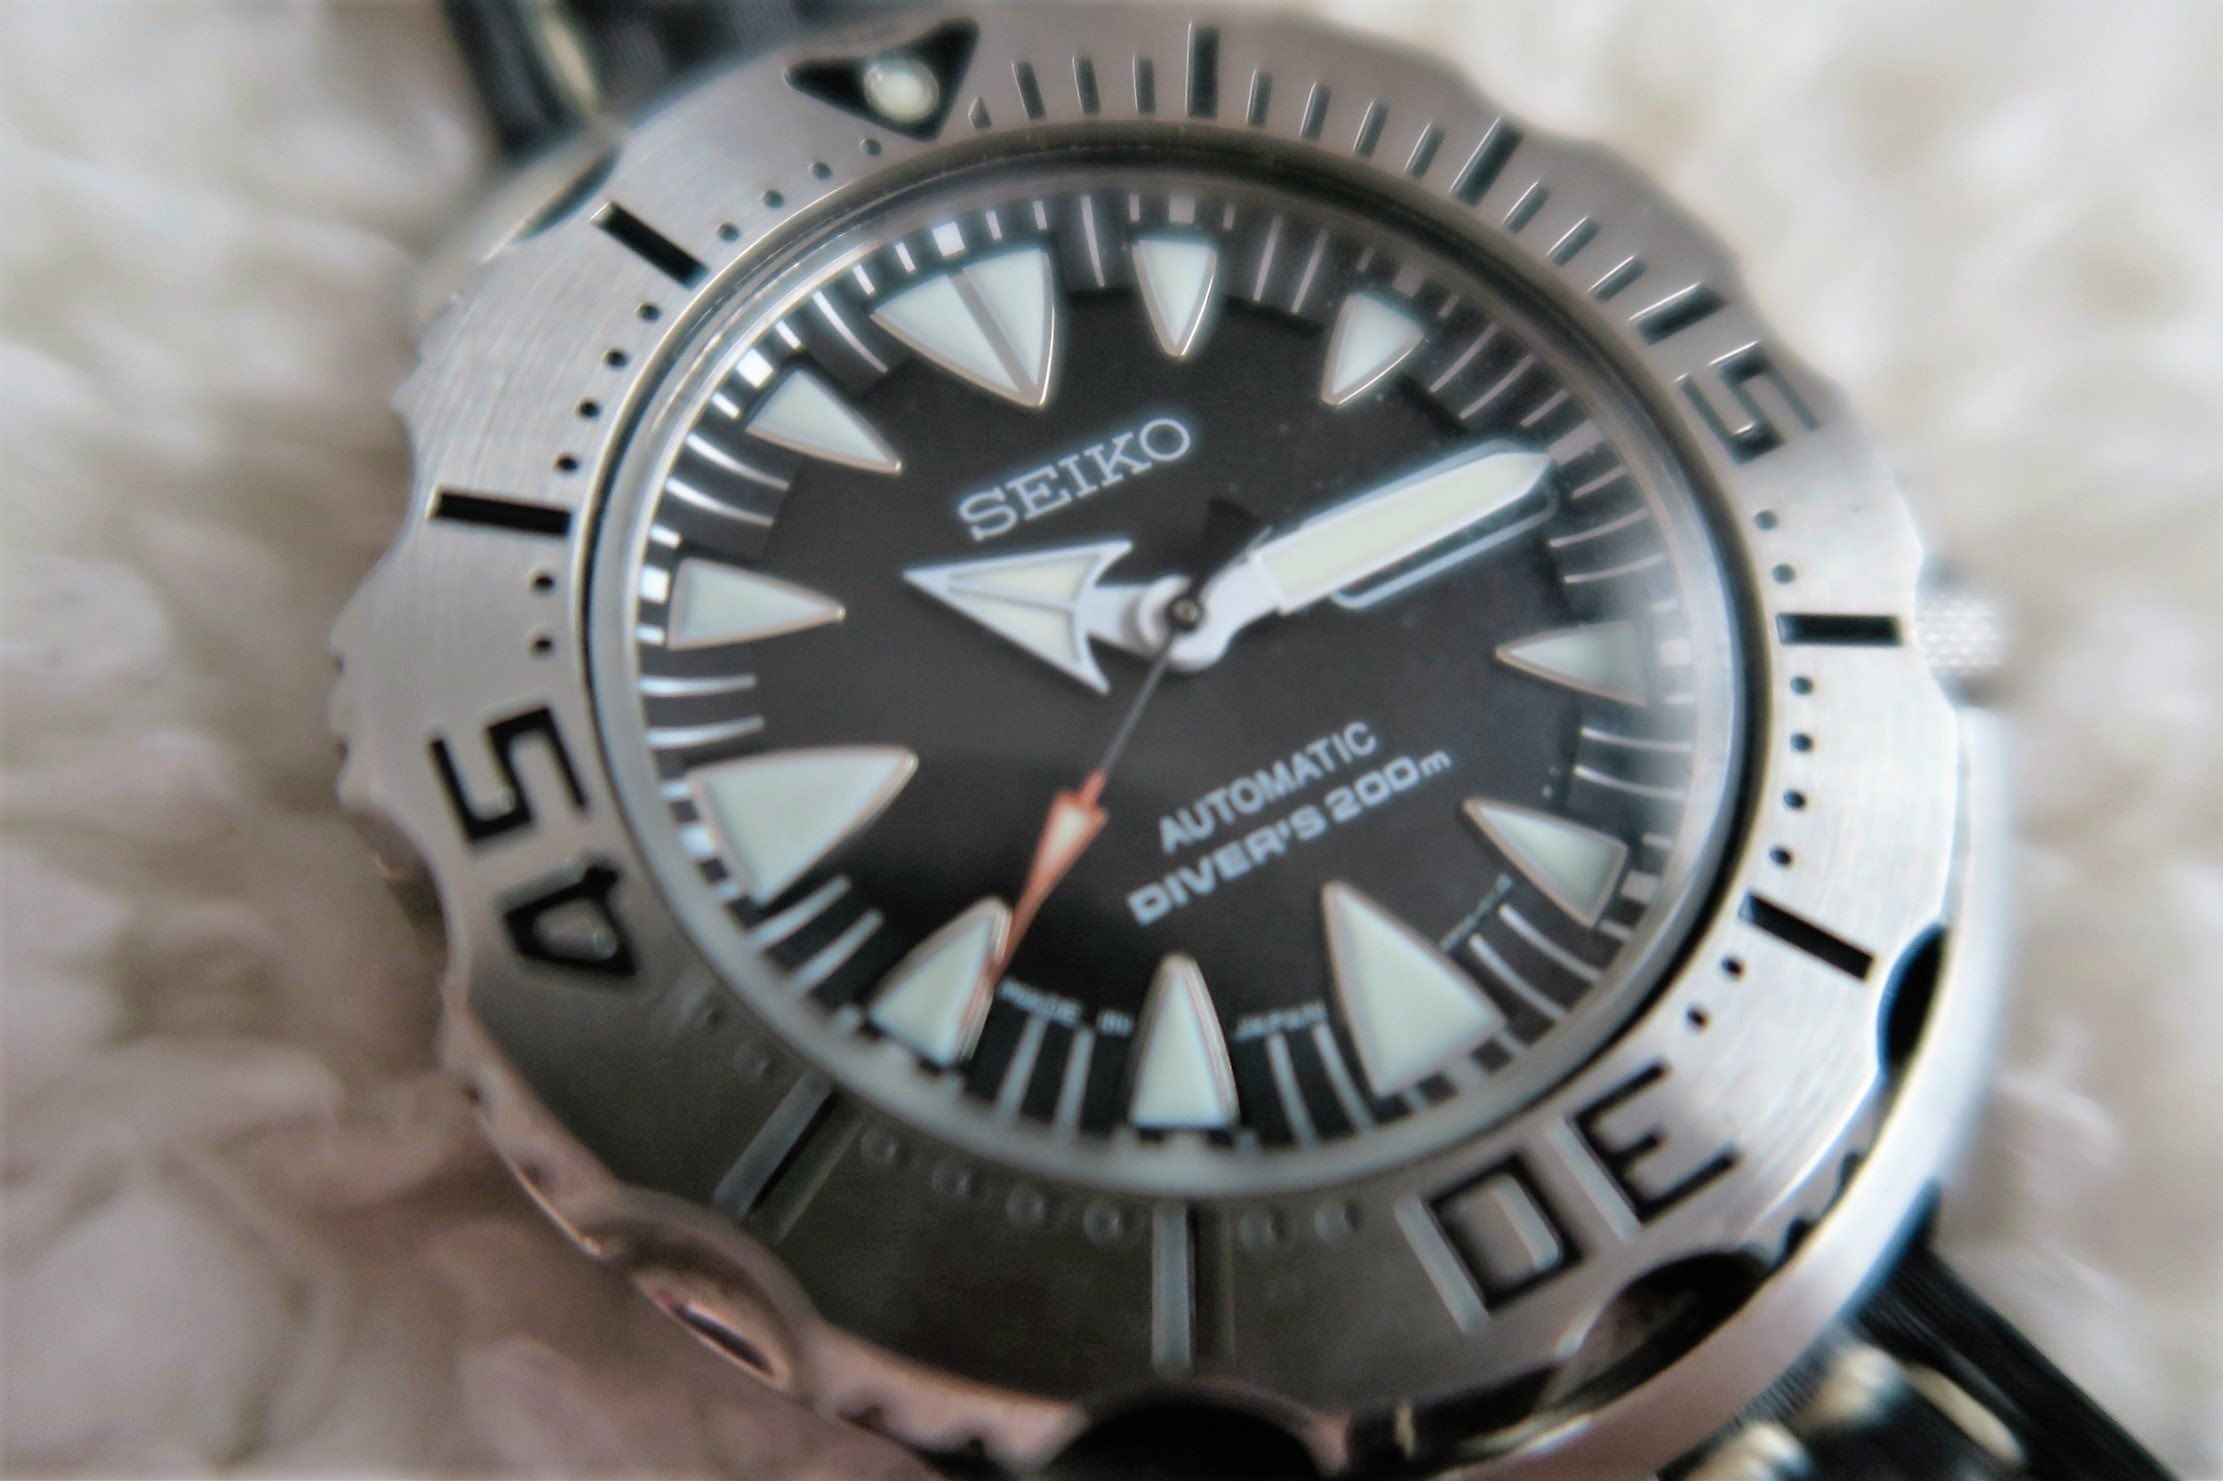 diving revolution watch the history watches of making dive scuba military